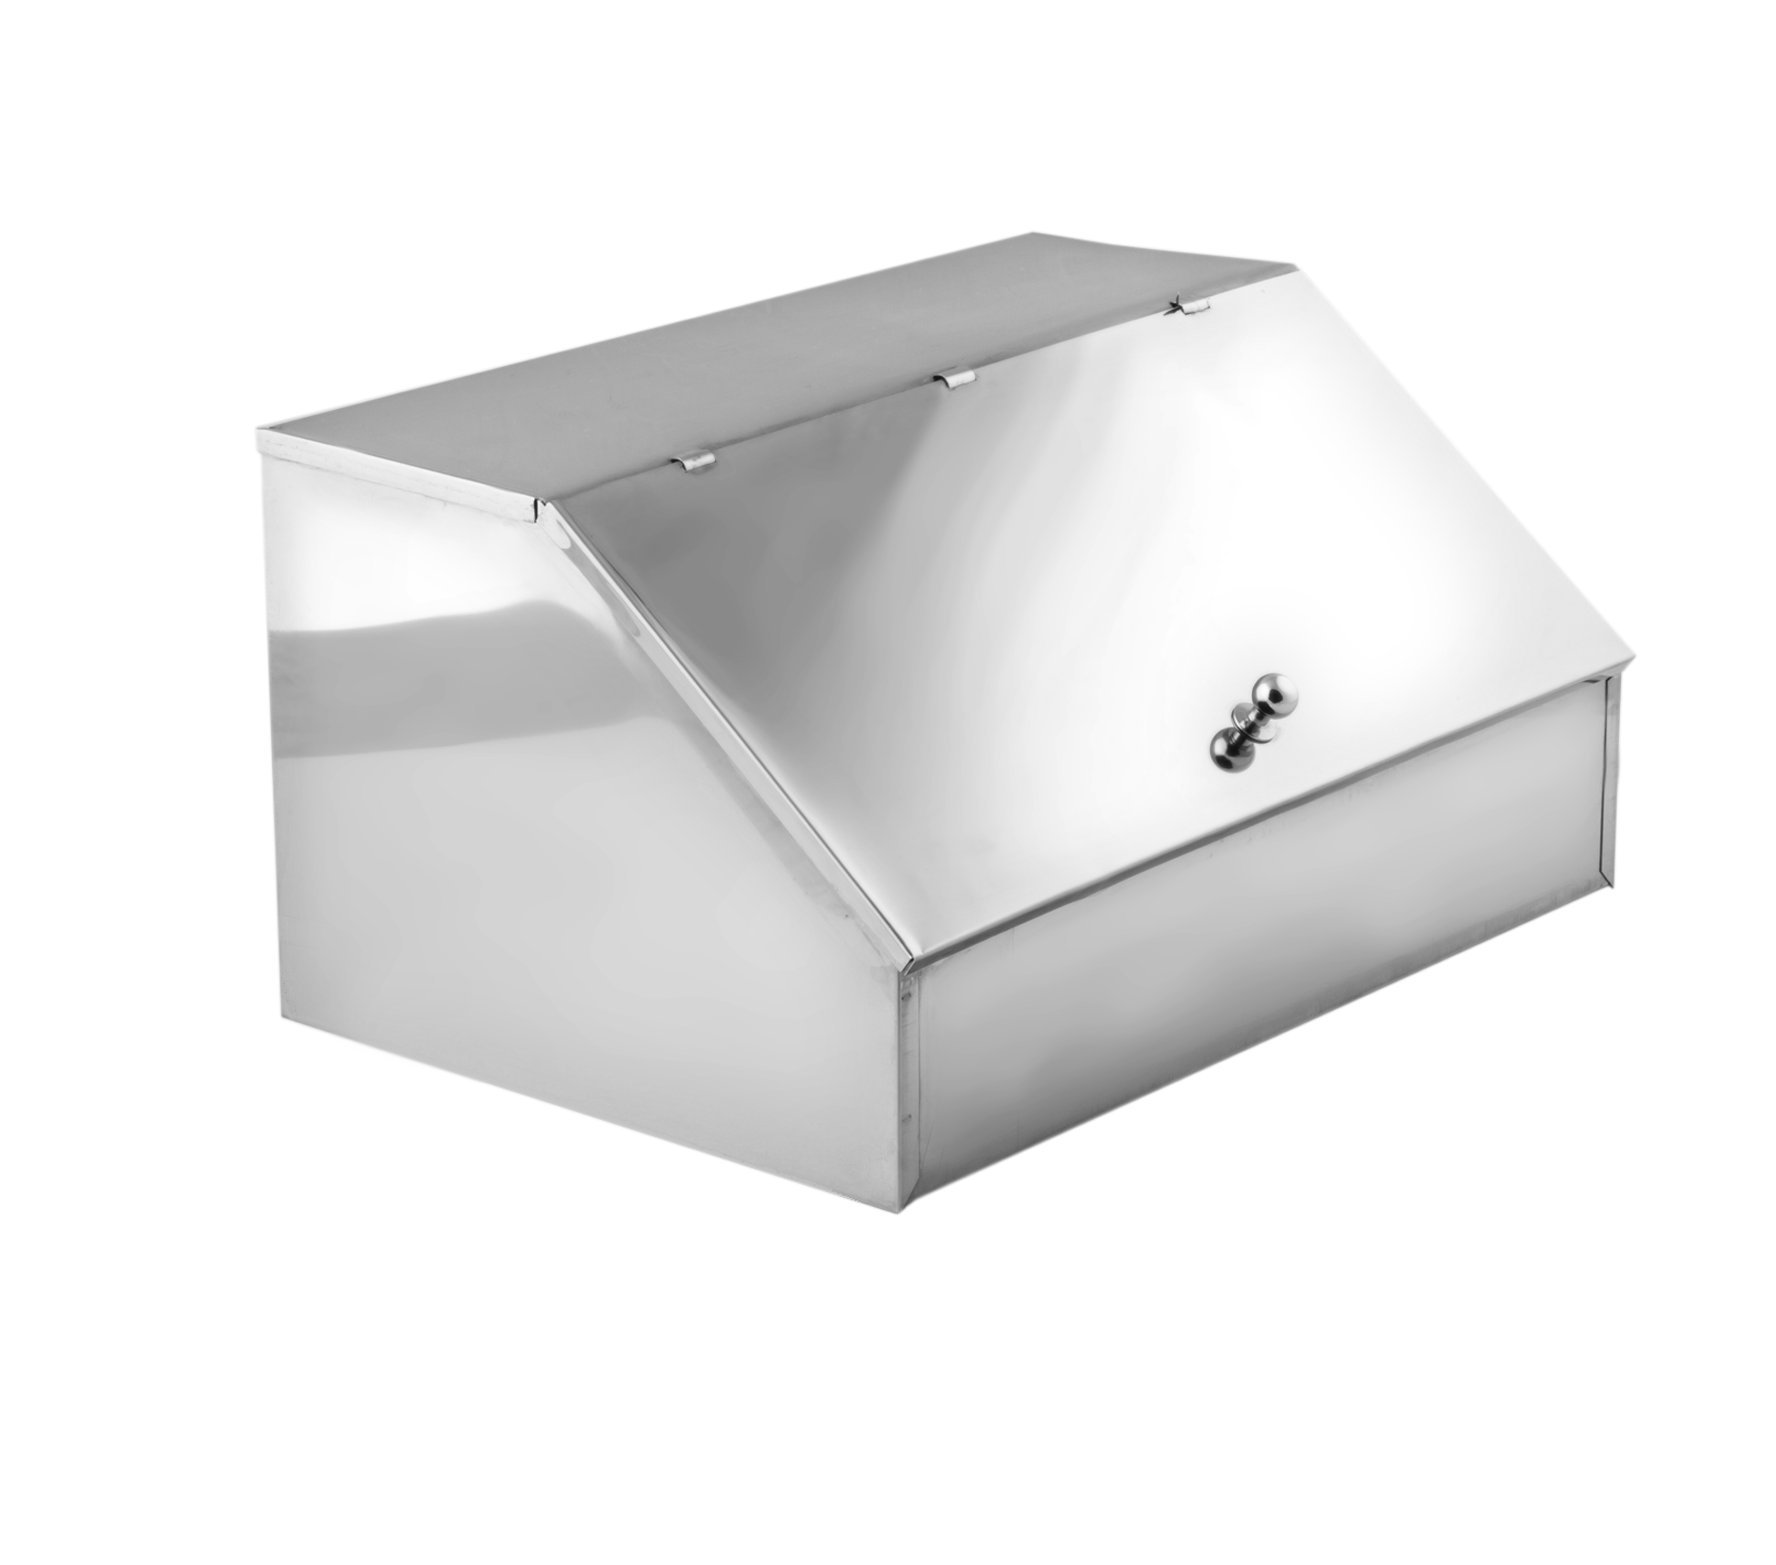 Metano M270030 INOX 2 Cases Coffee Box in Polybag, Large, Stainless Steel, Silver